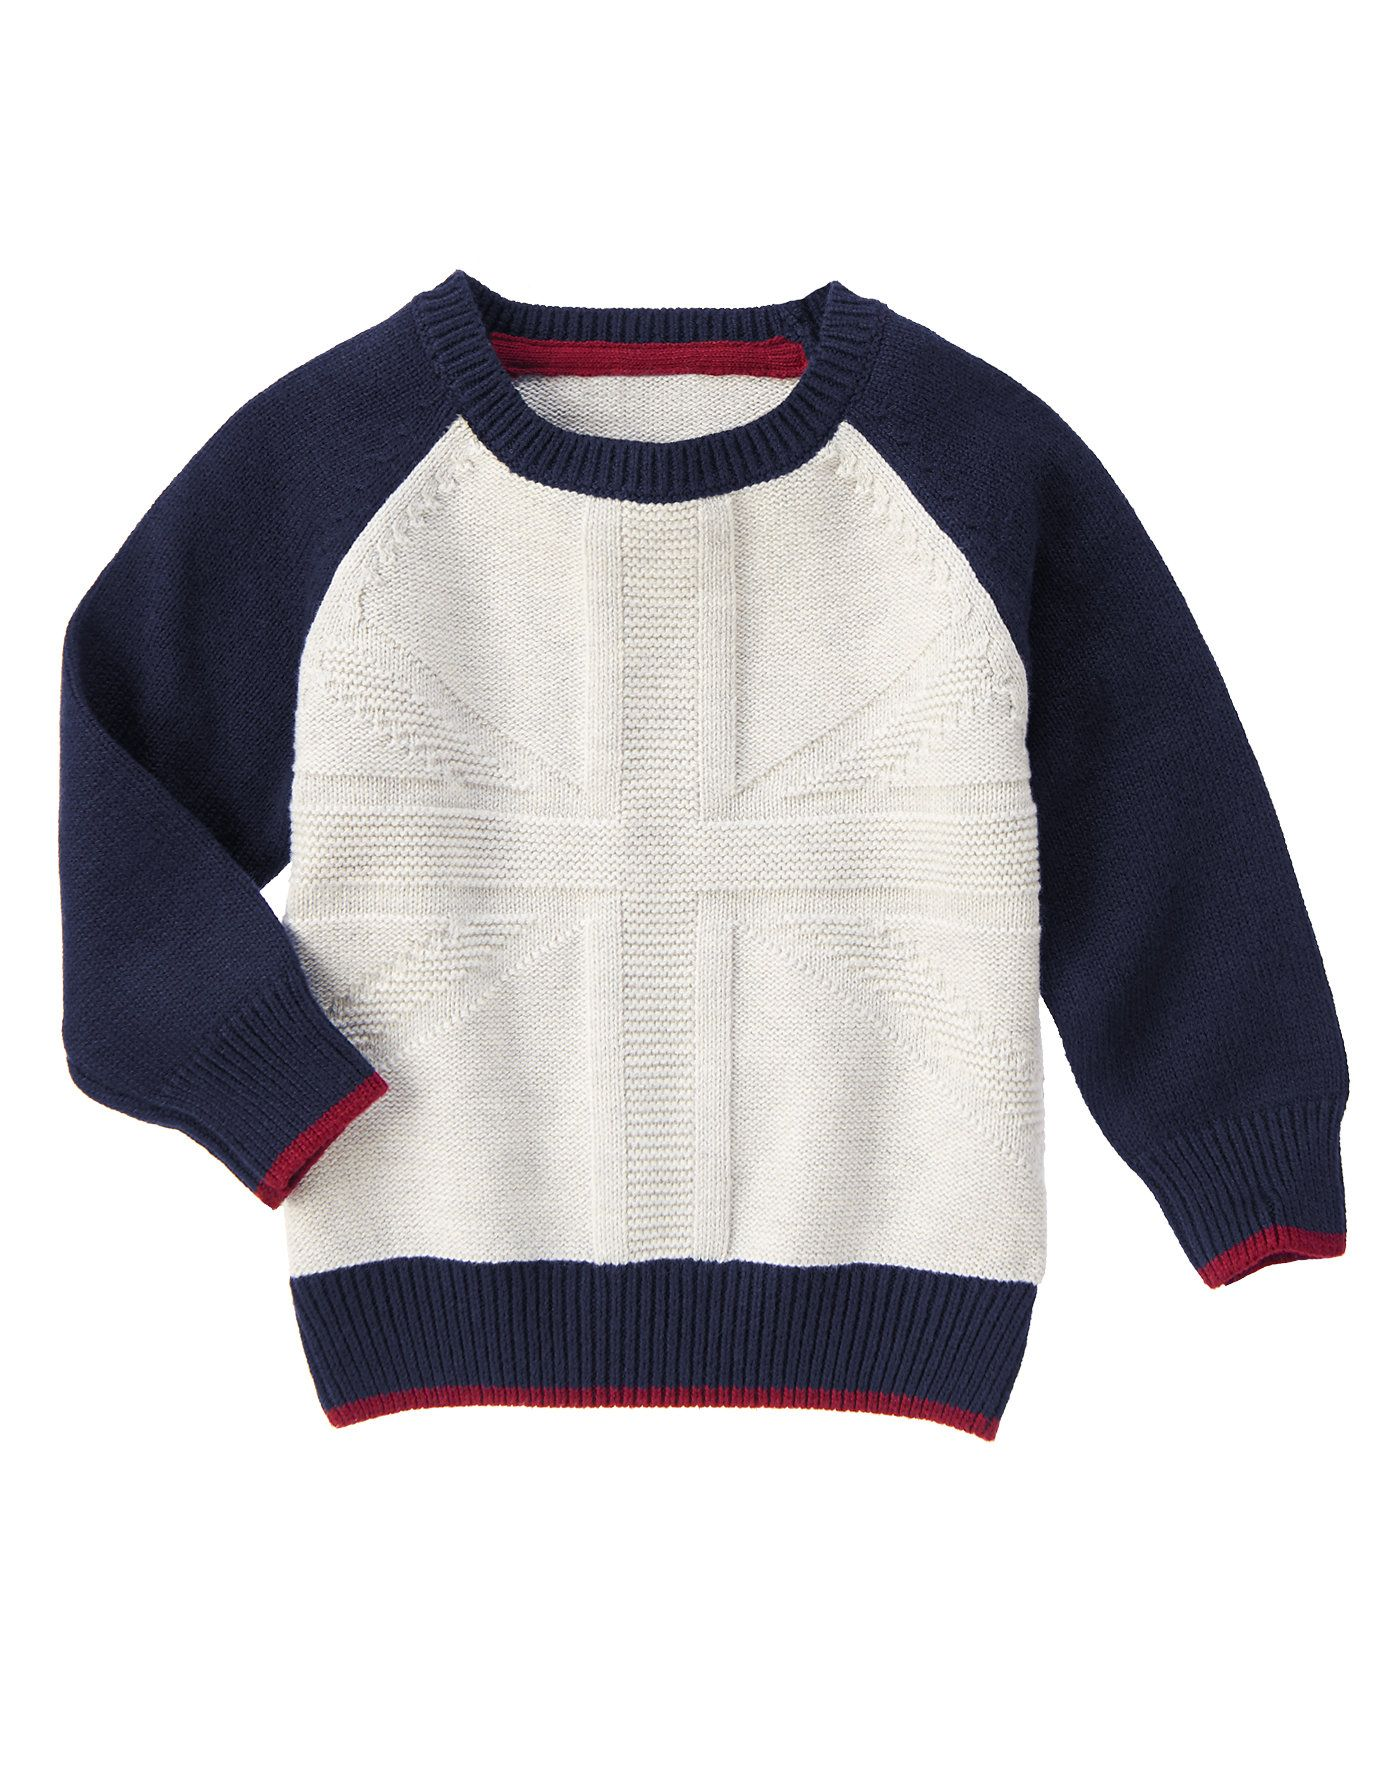 Union Jack Sweater At Gymboree